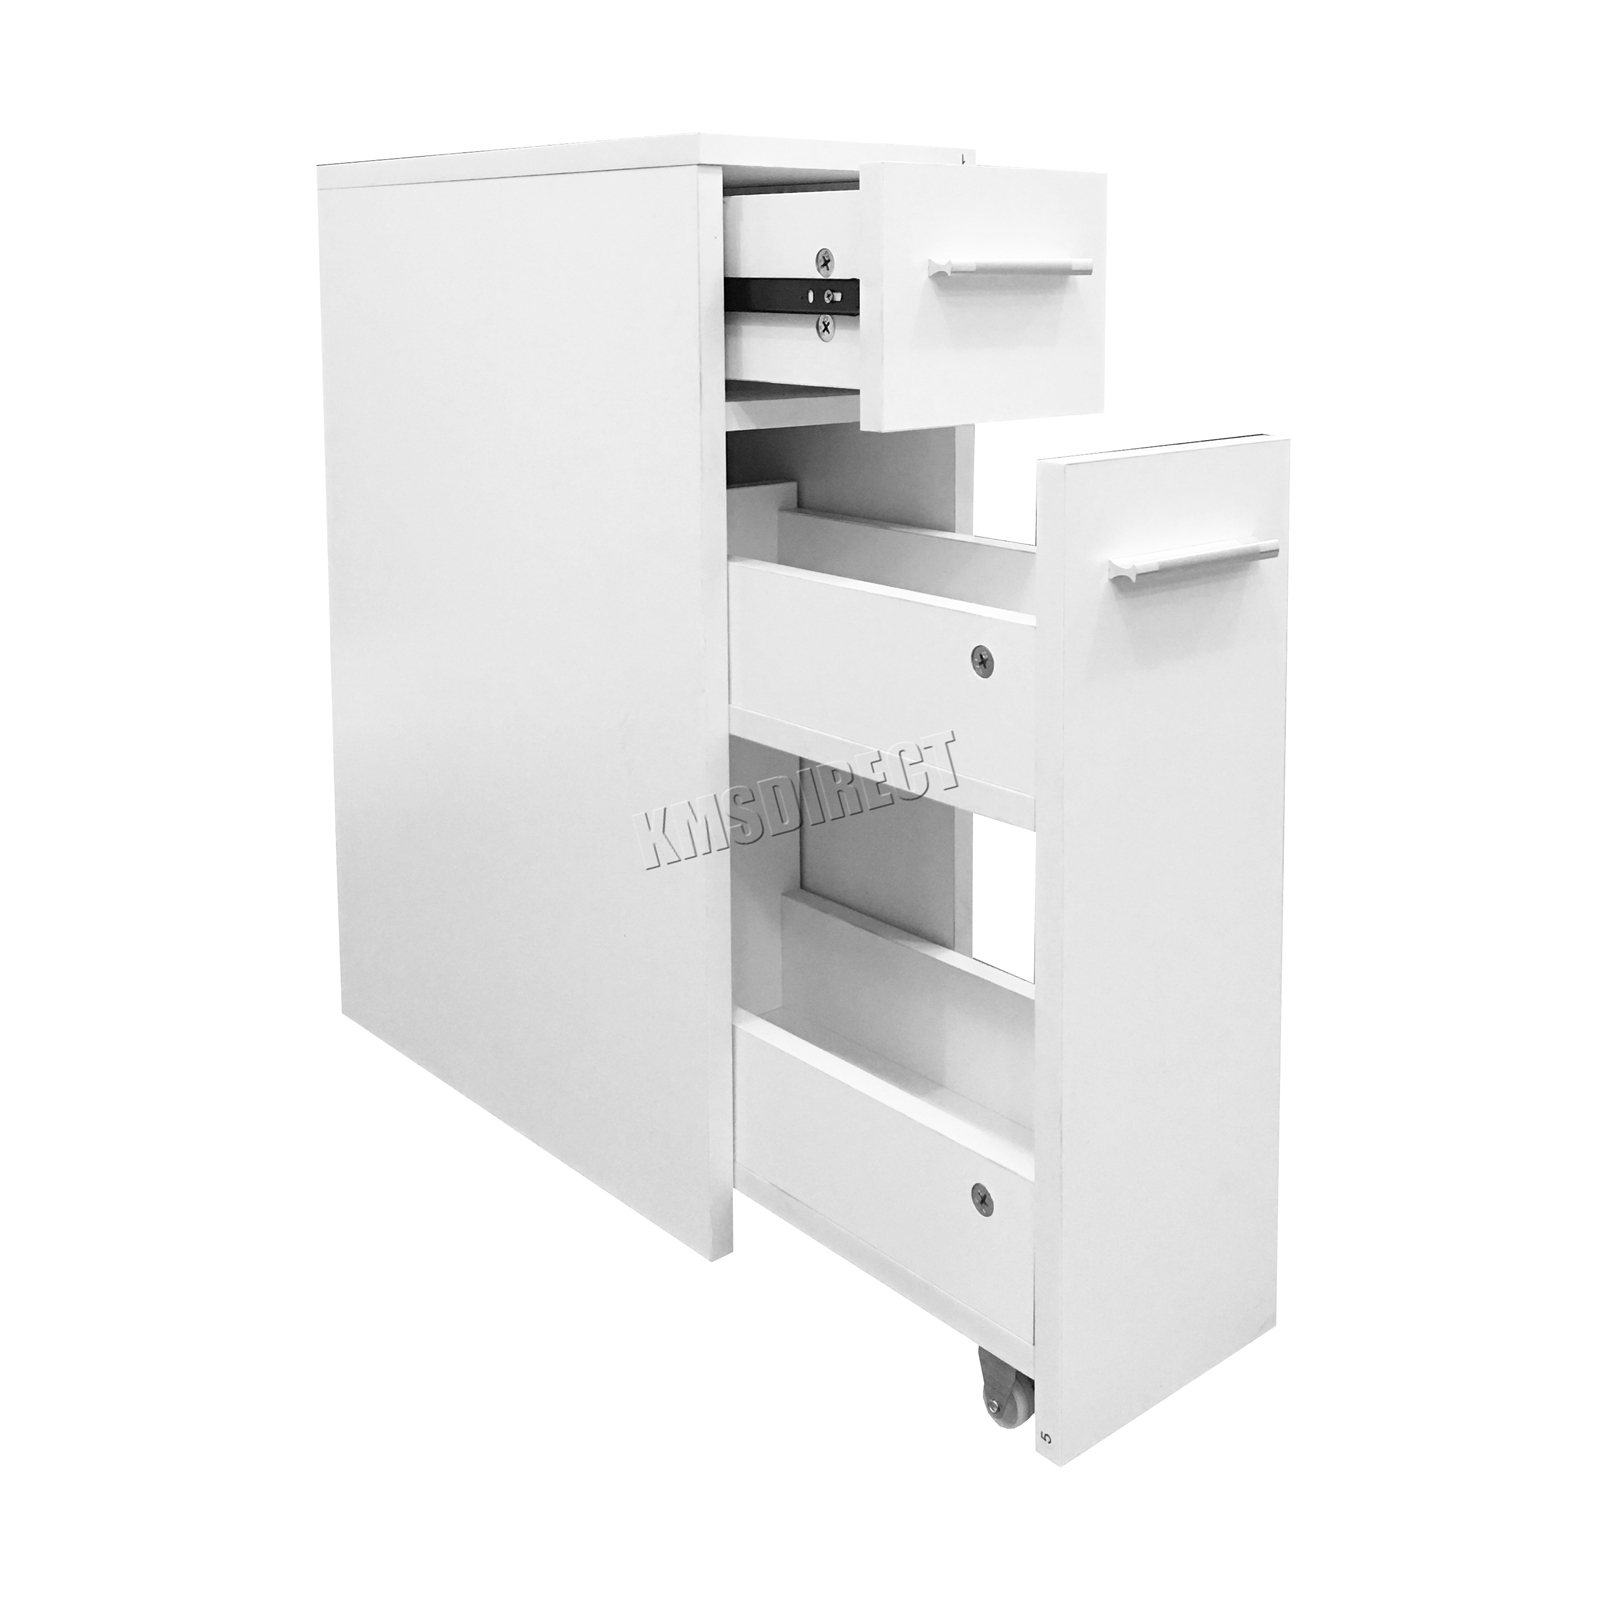 Details About Westwood Slimline Bathroom Slide Out Storage Drawer Cabinet Cupboard Unit White for measurements 1600 X 1600